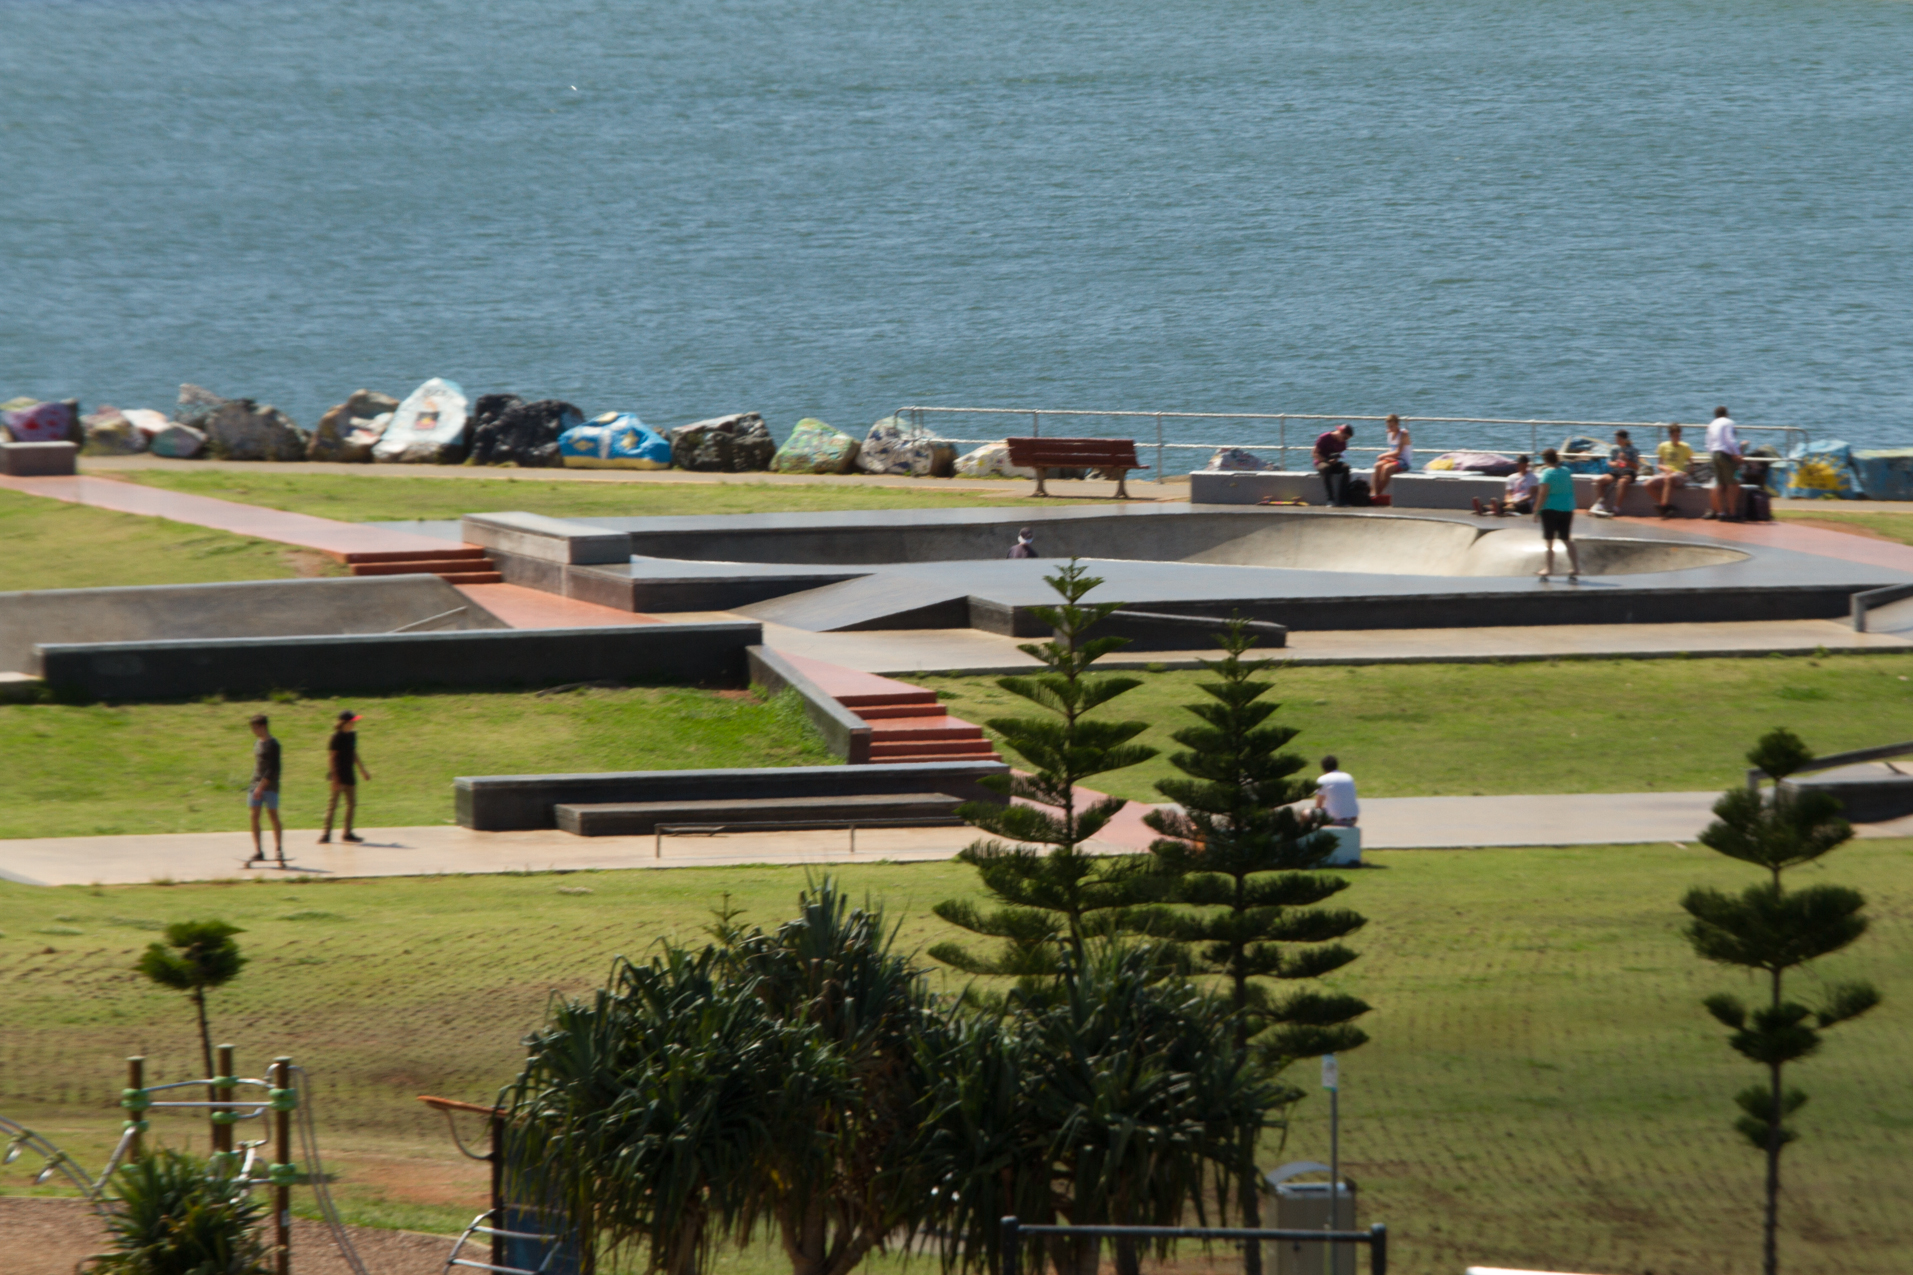 Fig 10: Skate park in Port Macquarie in NSW